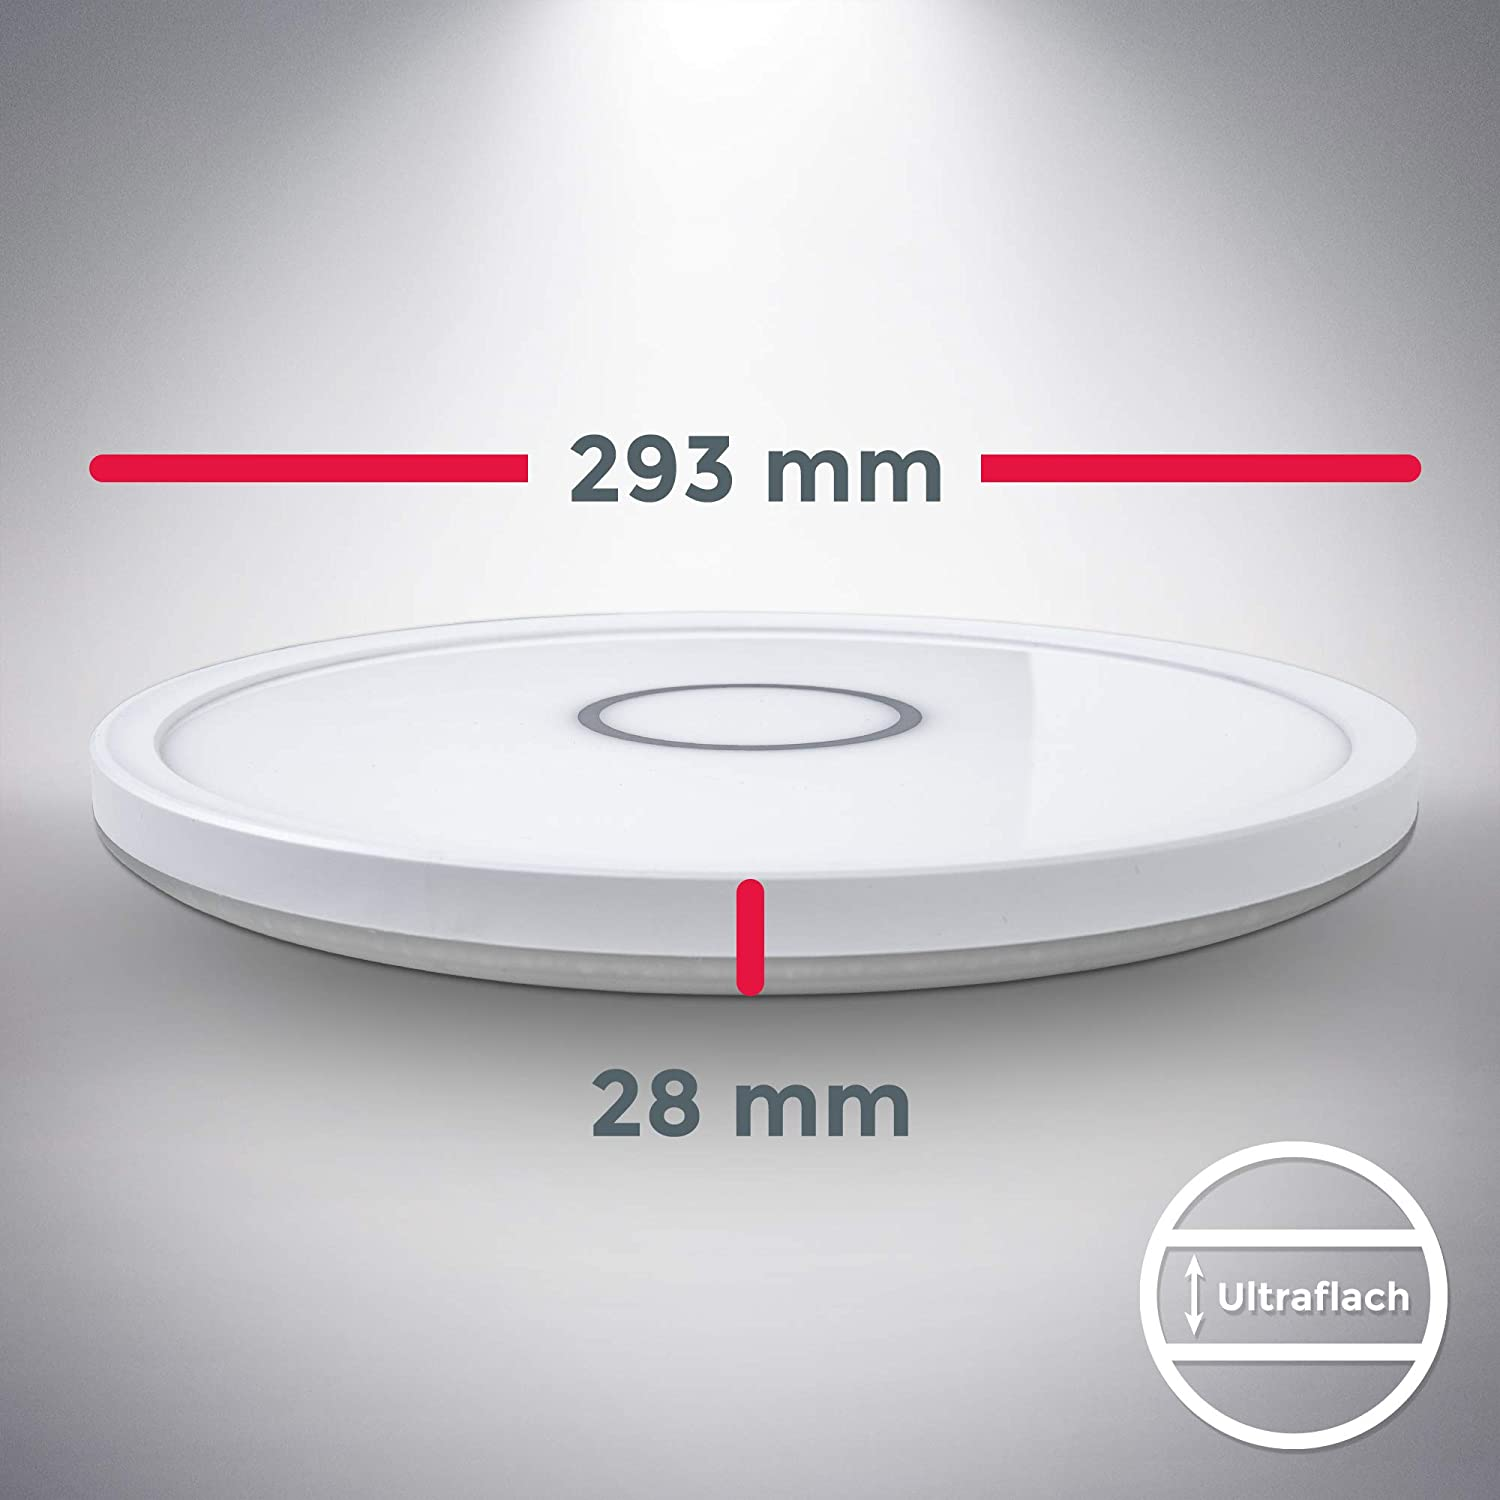 Bedroom Height 1.1in 4000K Natural White 2400Lm /Ø11.53in Ultra-Thin Modern Light Fitting for Office Kitchen IP20 Flush Mount Dining Room B.K.Licht LED Ceiling Light Built-in 18W LED Board